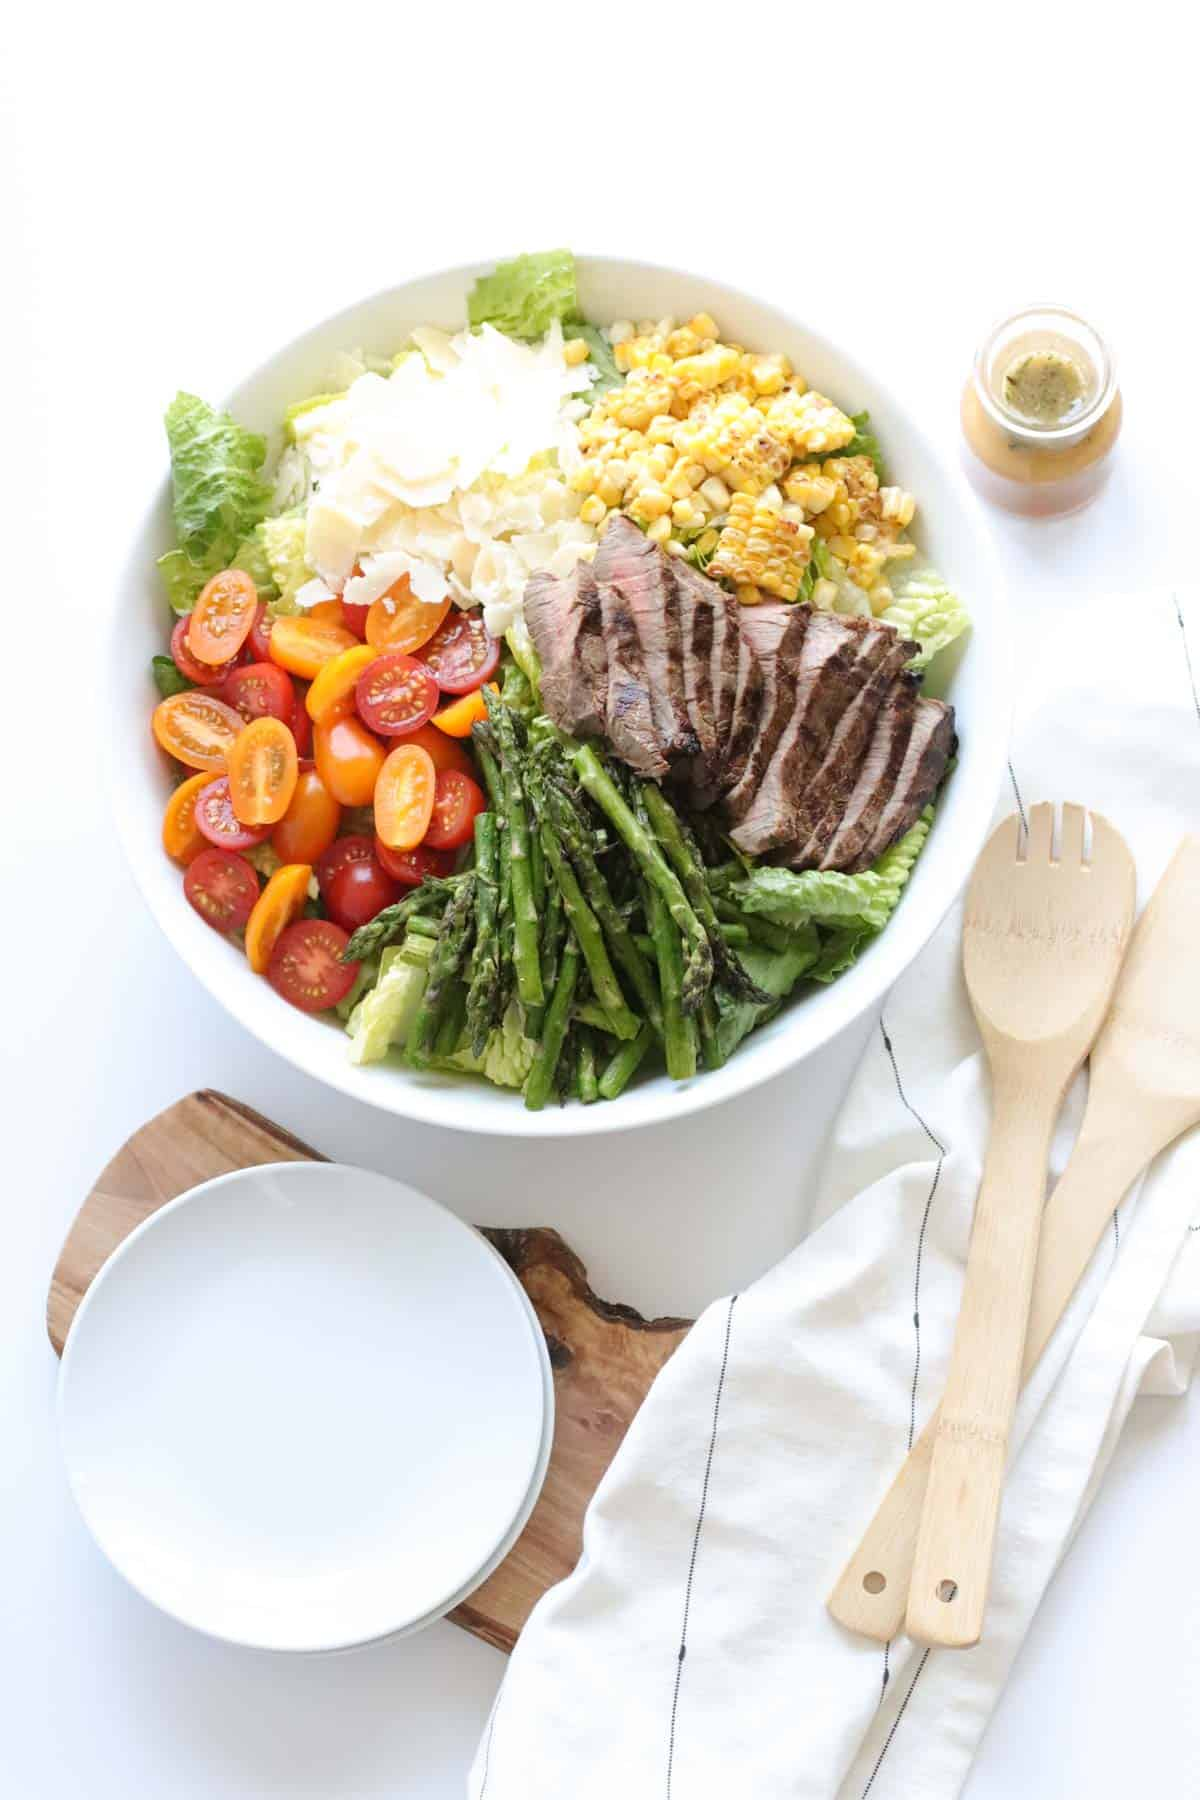 table set with serving bowl of grilled steak salad, wooden serving spoons, a stack of small white plates, and a bottle of salad dressing